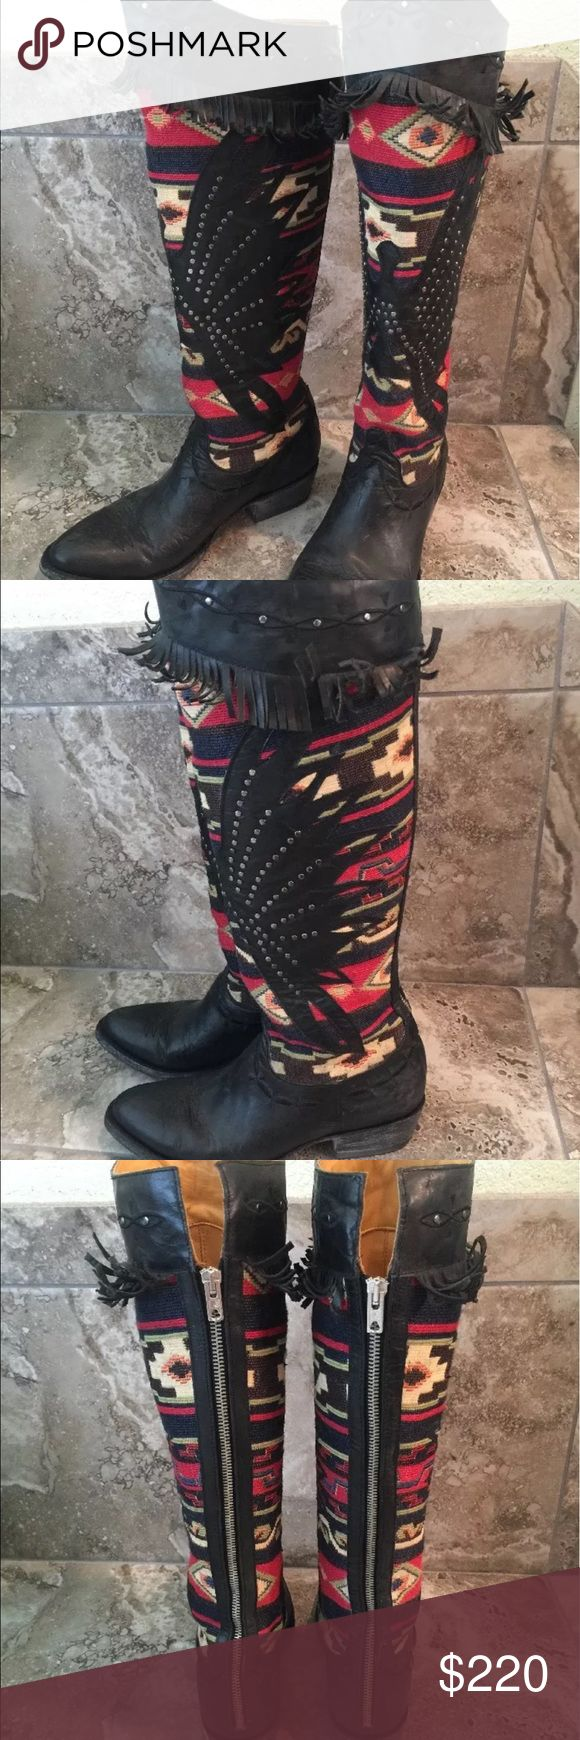 """Old Gringo San Juanera 8.5 Gorgeous handmade Old Gringo San Juanera 18"""" shaft boots with back zippers, leather lowers, and fringe with eagles on the Aztec-design uppers. Worn once & perfect condition! These retail at $700! Old Gringo Shoes Heeled Boots"""